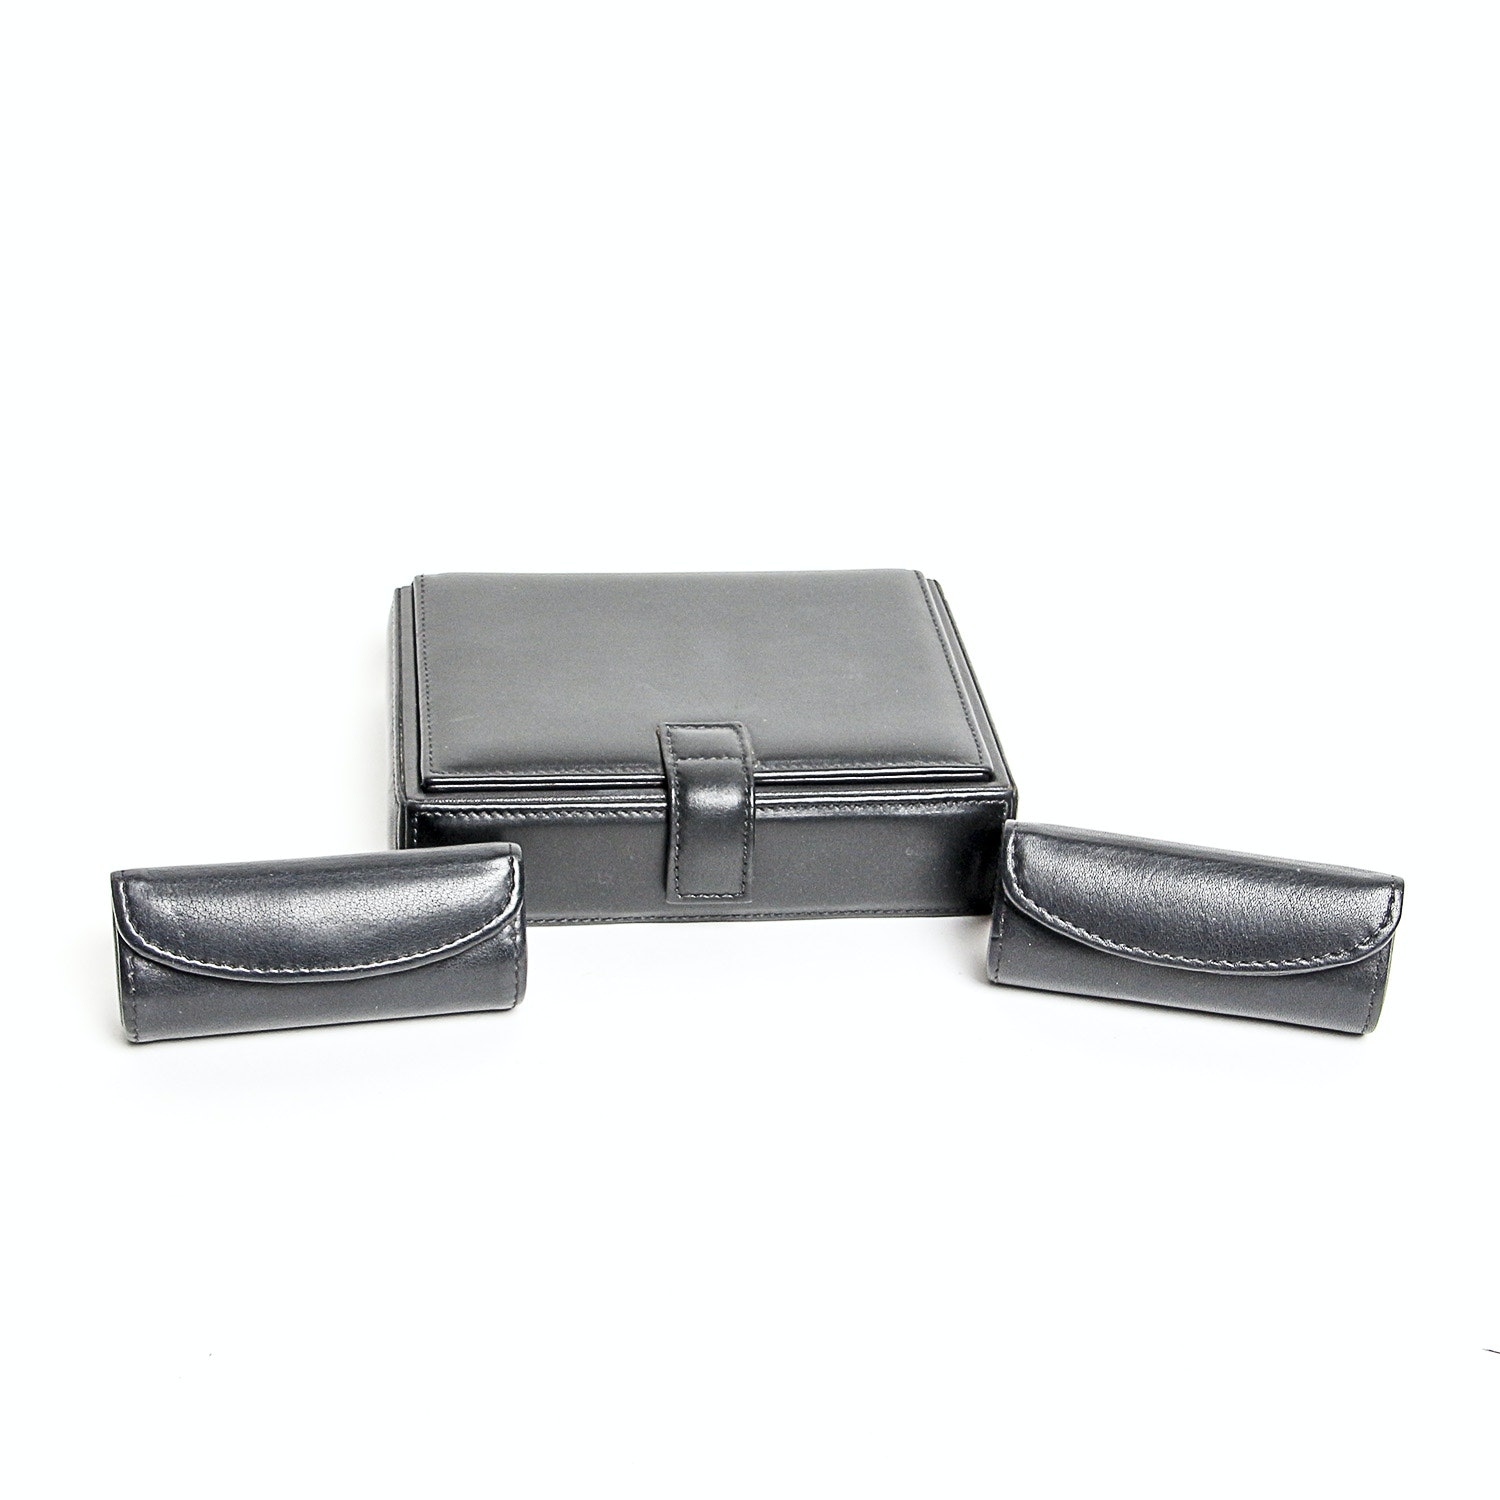 Coach Jewelry Box and Two Lipstick Cases